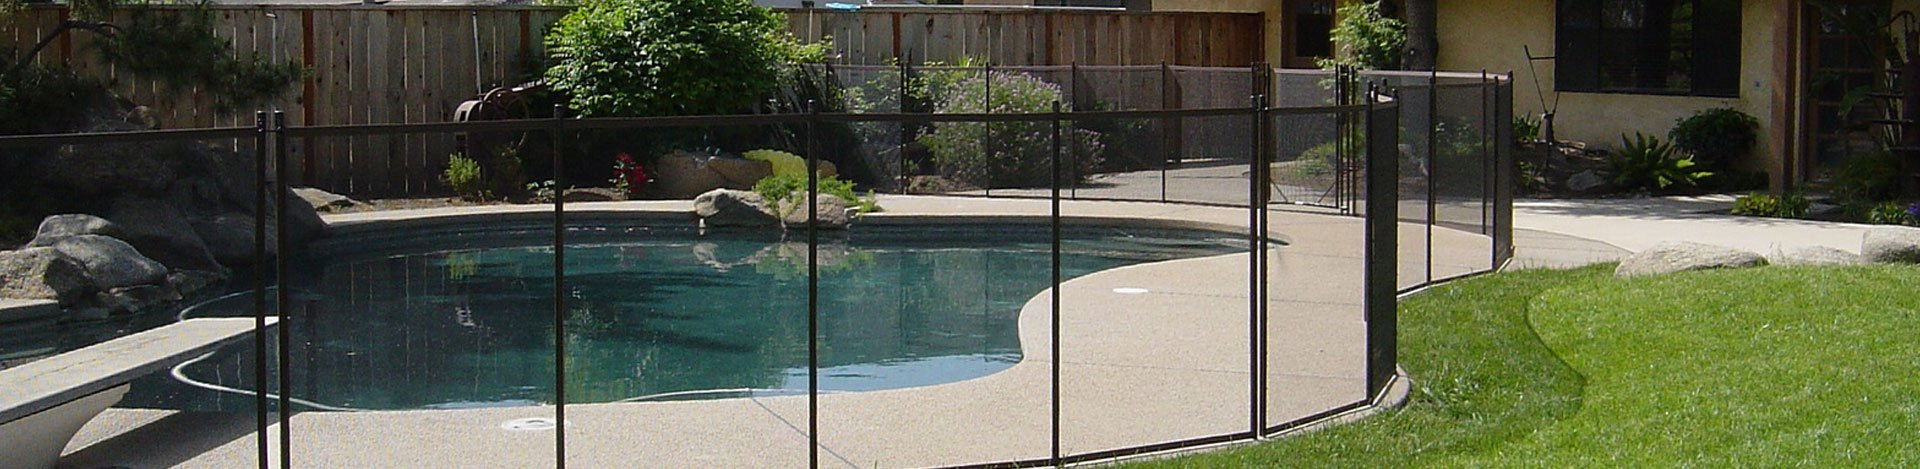 Pool Fence Marlboro Nj Pool Fencing Marlboro Nj